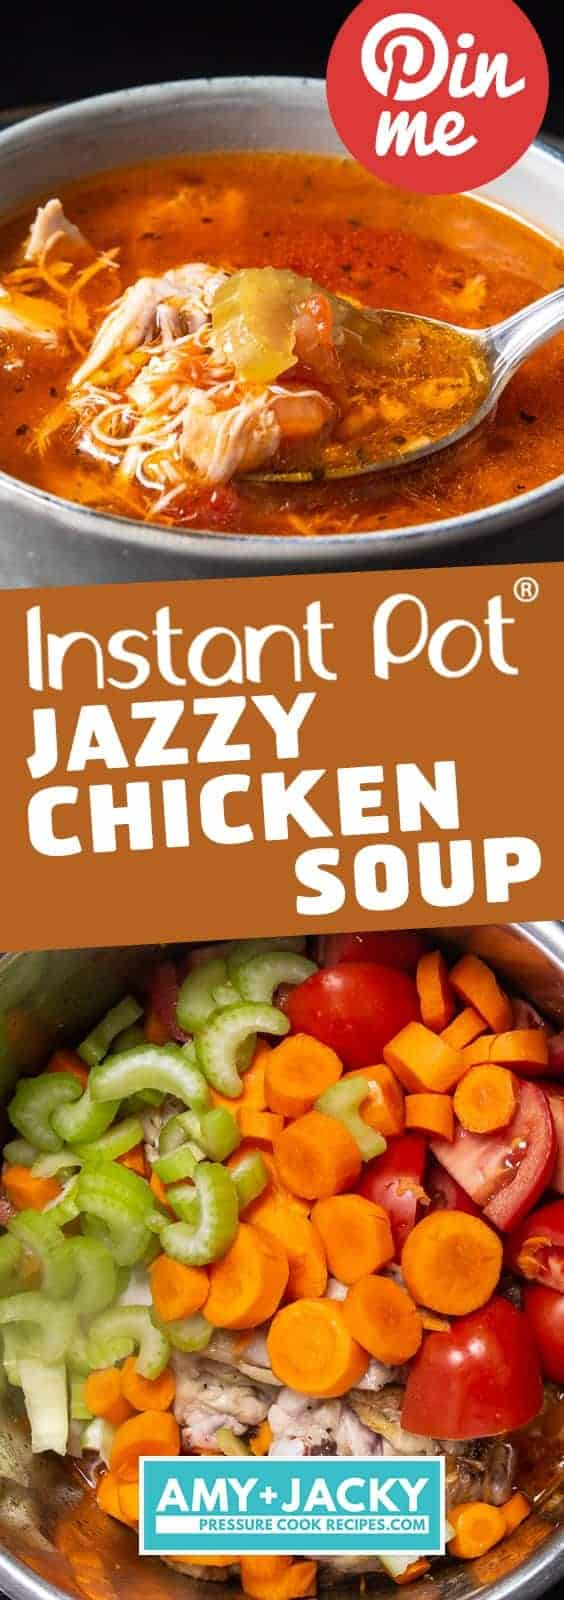 Instant Pot Chicken Soup | Pressure Cooker Chicken Soup | Homemade Chicken Soup | Instant Pot Chicken | Instant Pot Soup | Pressure Cooker Chicken | Instant Pot Recipes | Pressure Cooker Recipes #instantpot #pressurecooker #chicken #soup #healthy